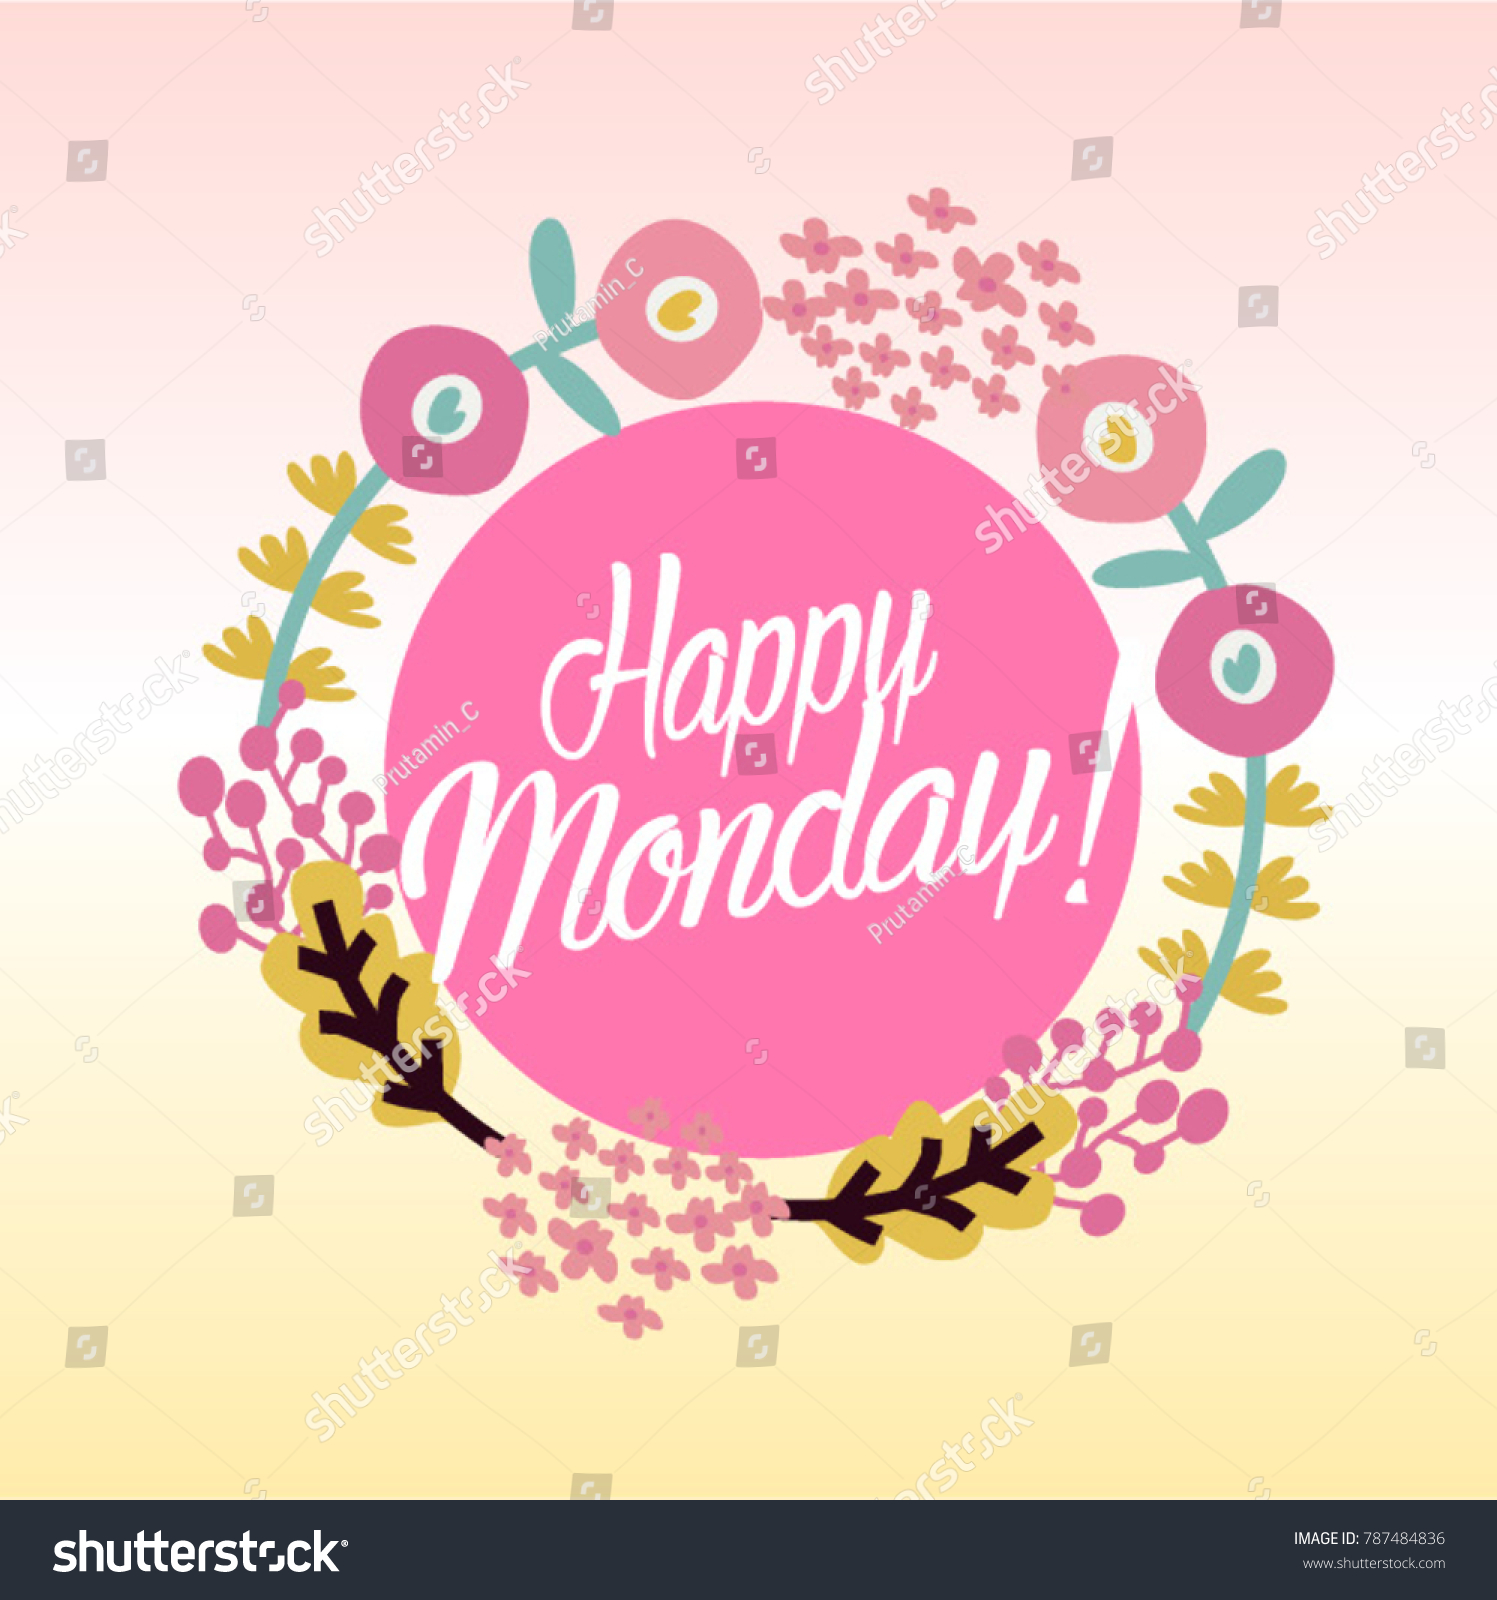 Happy Monday Beautiful Greeting Card Poster Stock Vector Royalty